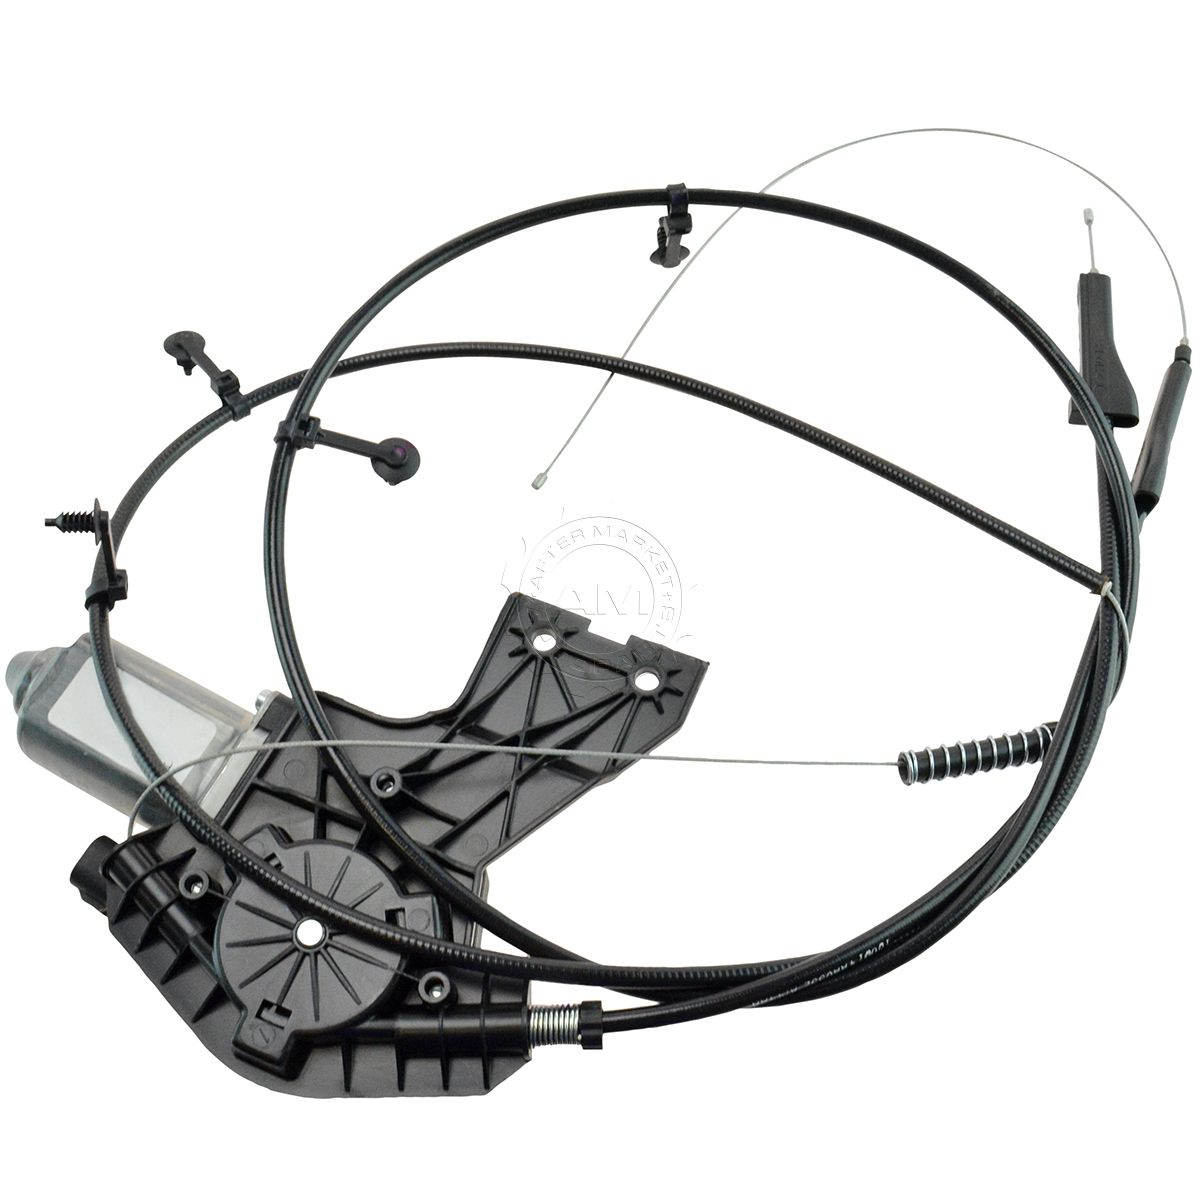 Oem Rear Power Sliding Window Motor Cable Assembly For Dodge Ram Wiring Harness Windows Pickup Truck